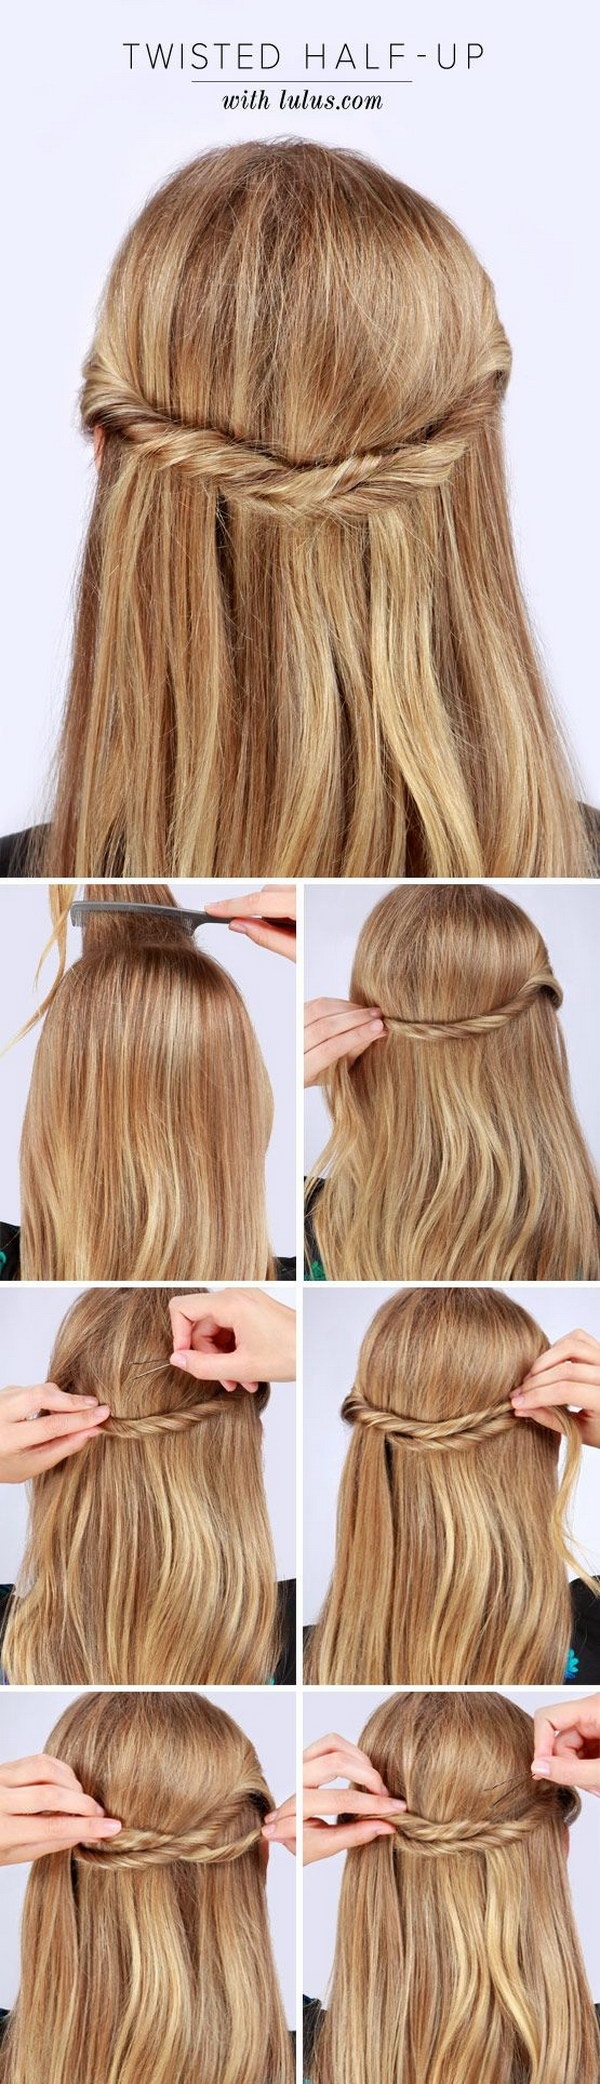 Phenomenal 55 Stunning Half Up Half Down Hairstyles Styletic Hairstyle Inspiration Daily Dogsangcom